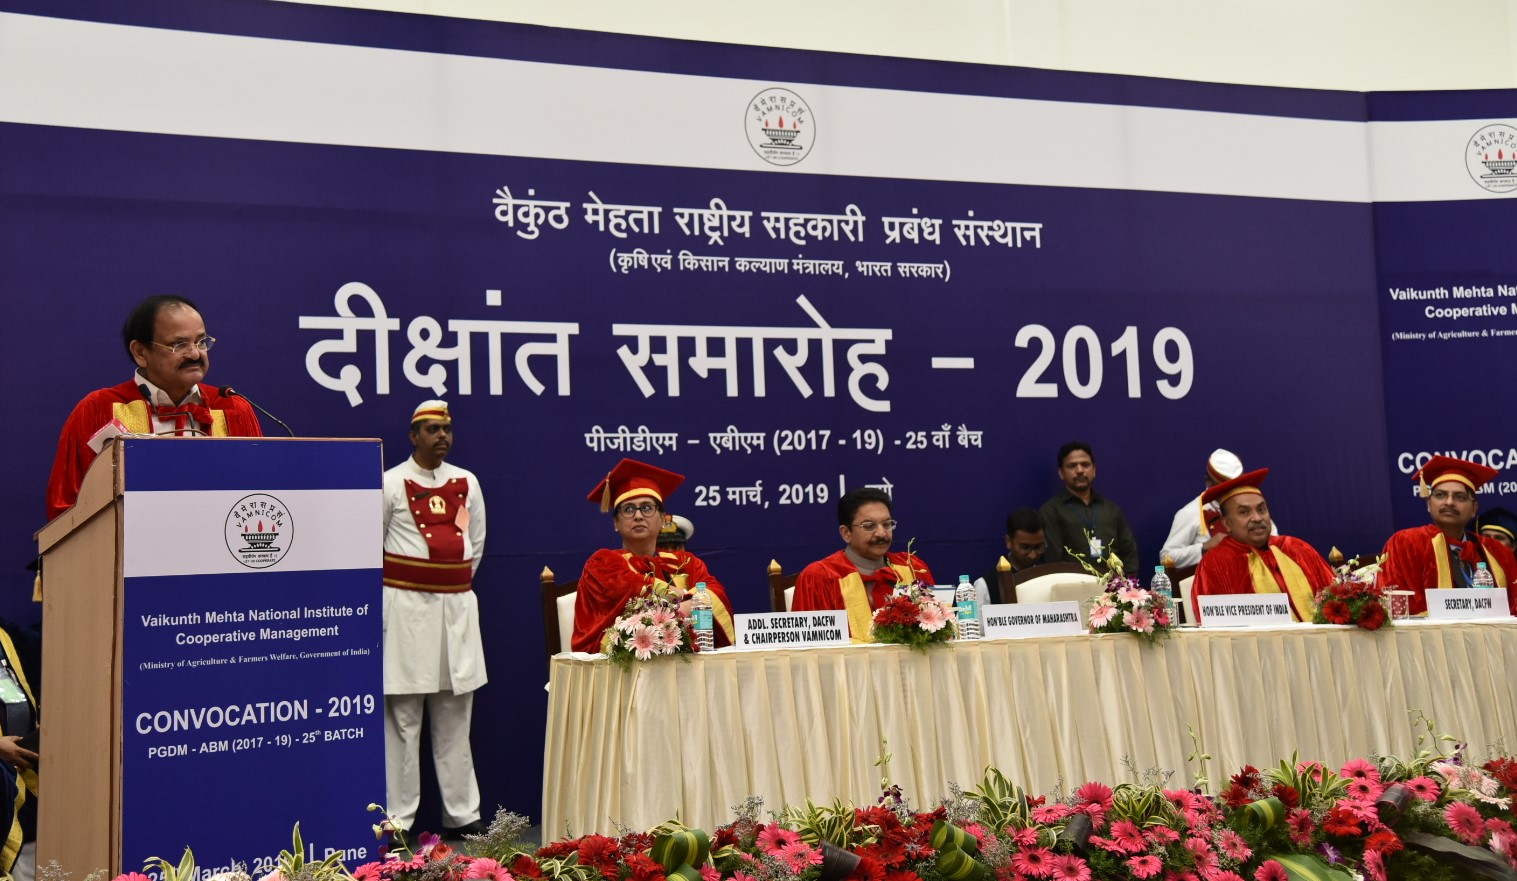 The Vice President, Shri M. Venkaiah Naidu addressing the Convocation of Vaikunth Mehta National Institute for Cooperative Management, in Pune, Maharashtra on March 25, 2019. The Governor of Maharashtra, Shri C. Vidyasagar Rao and other dignitaries are also seen.